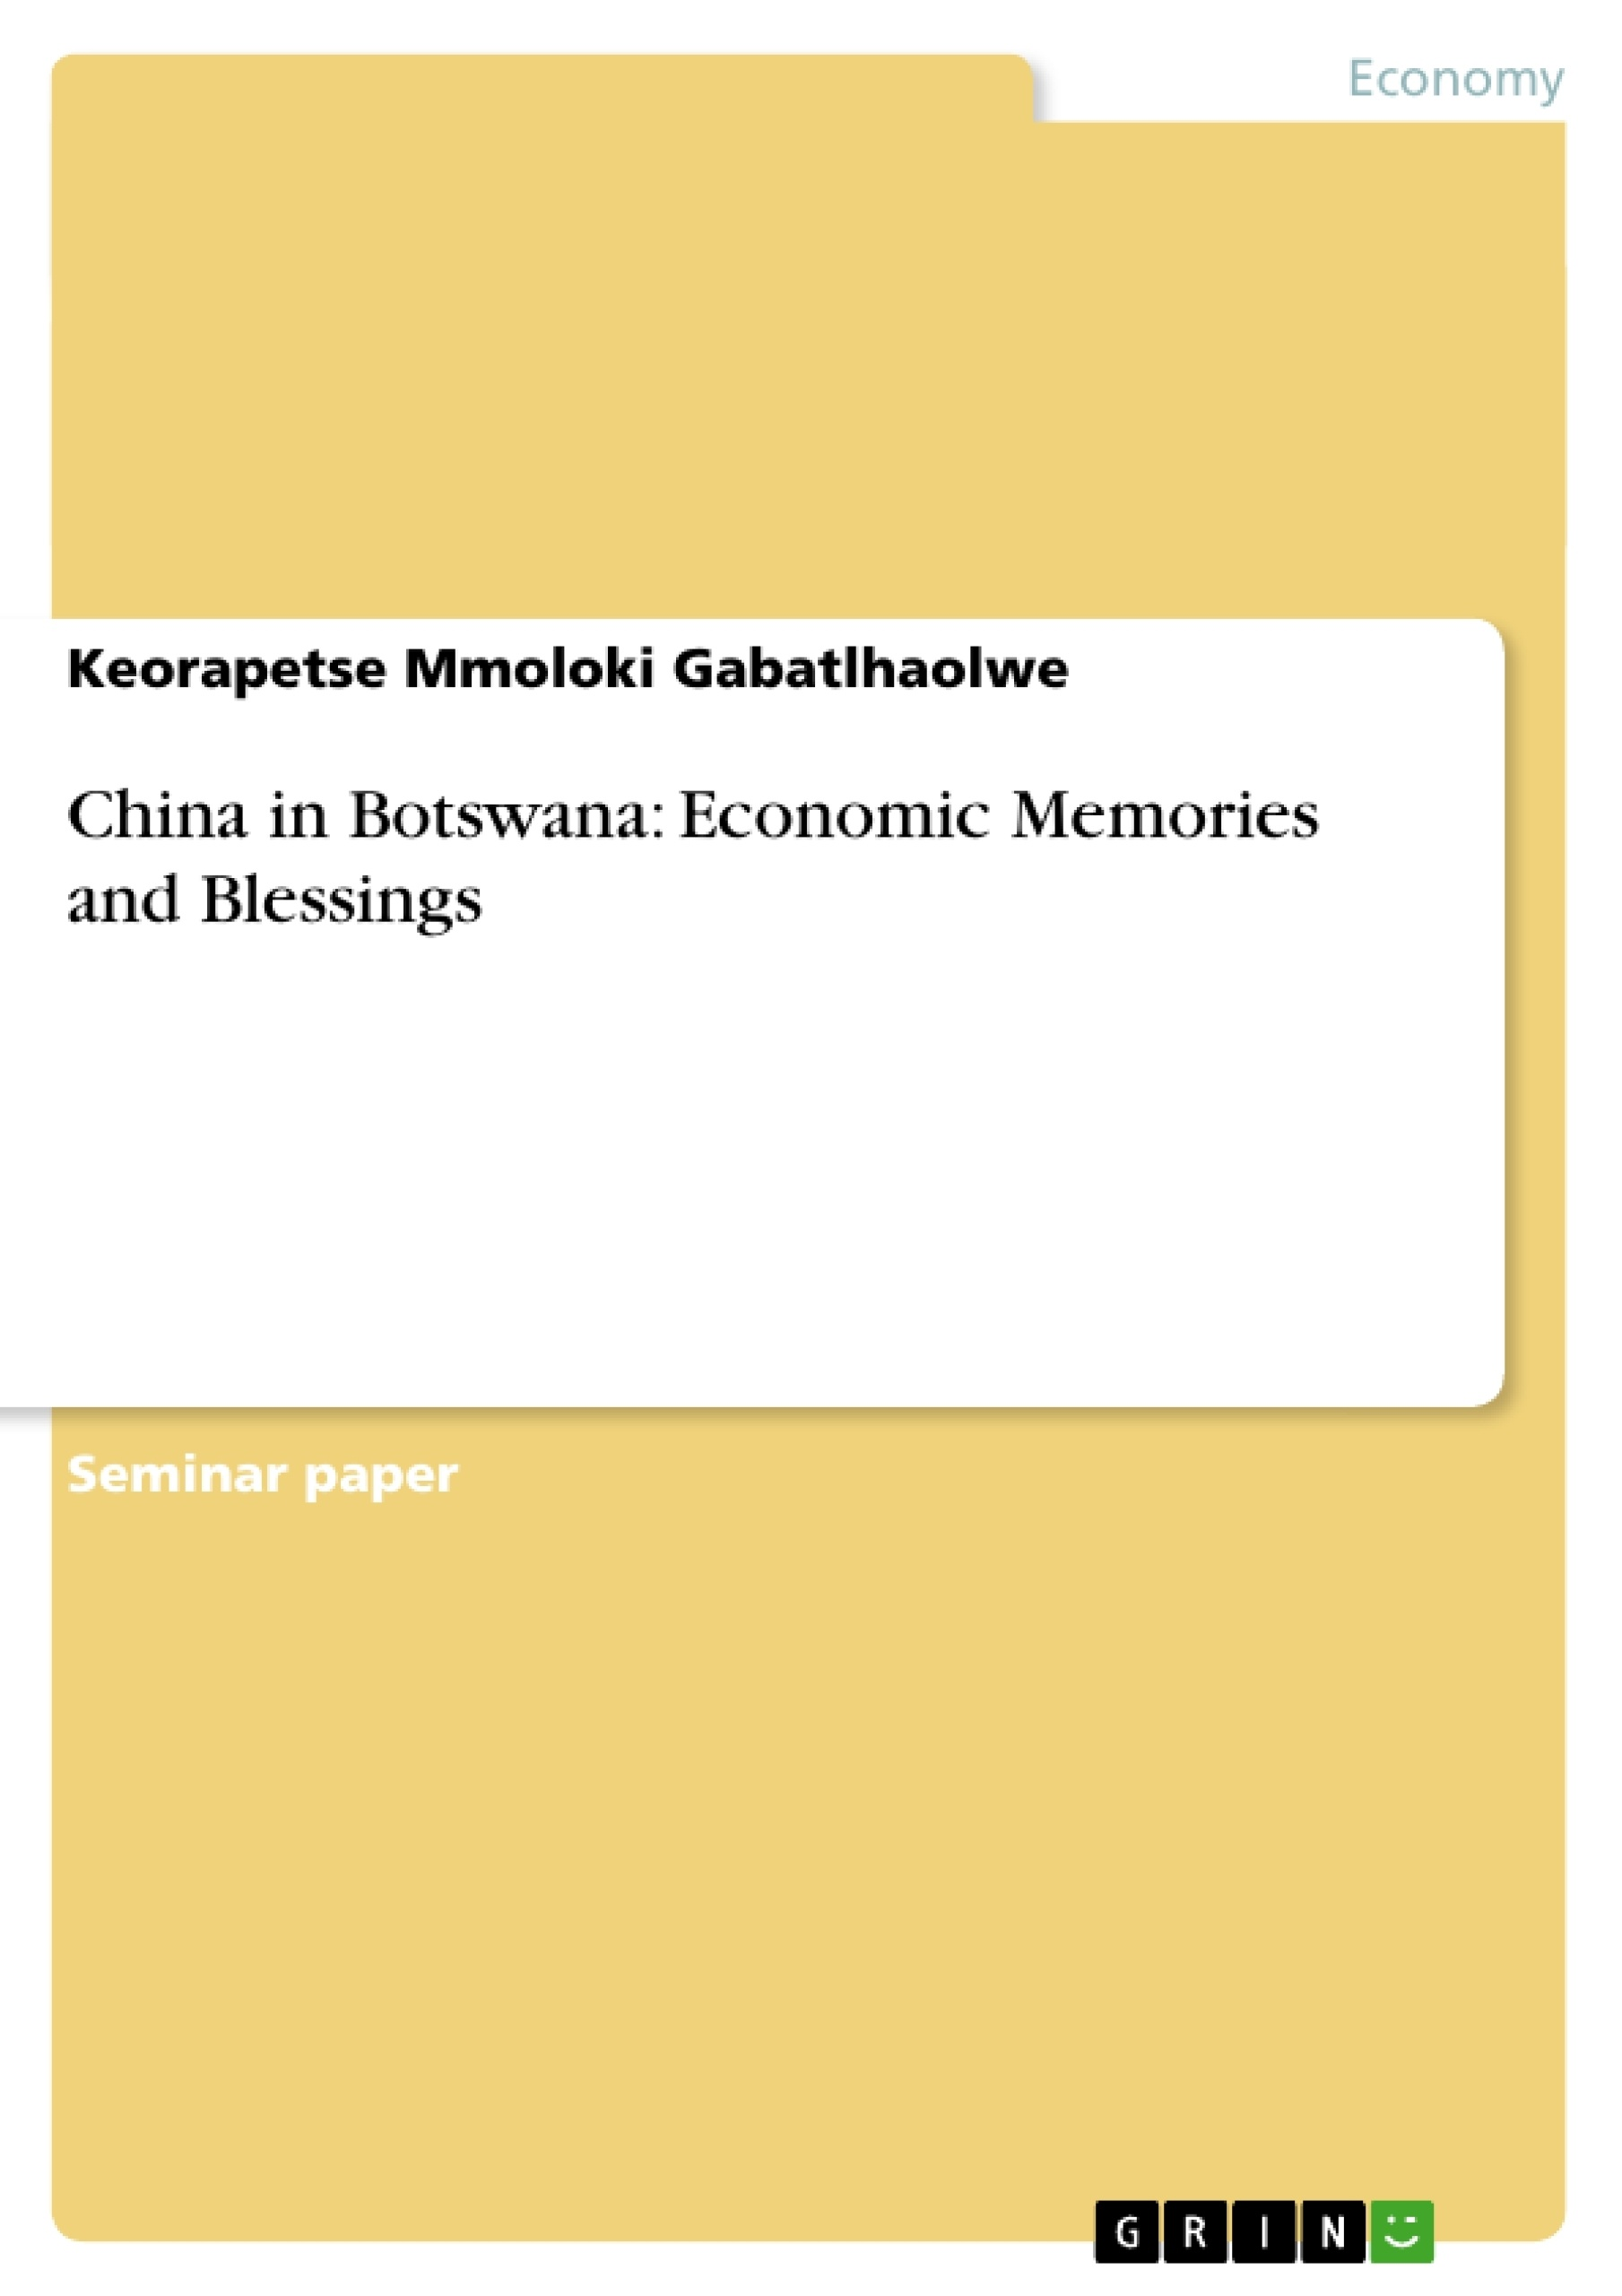 Title: China in Botswana: Economic Memories and Blessings